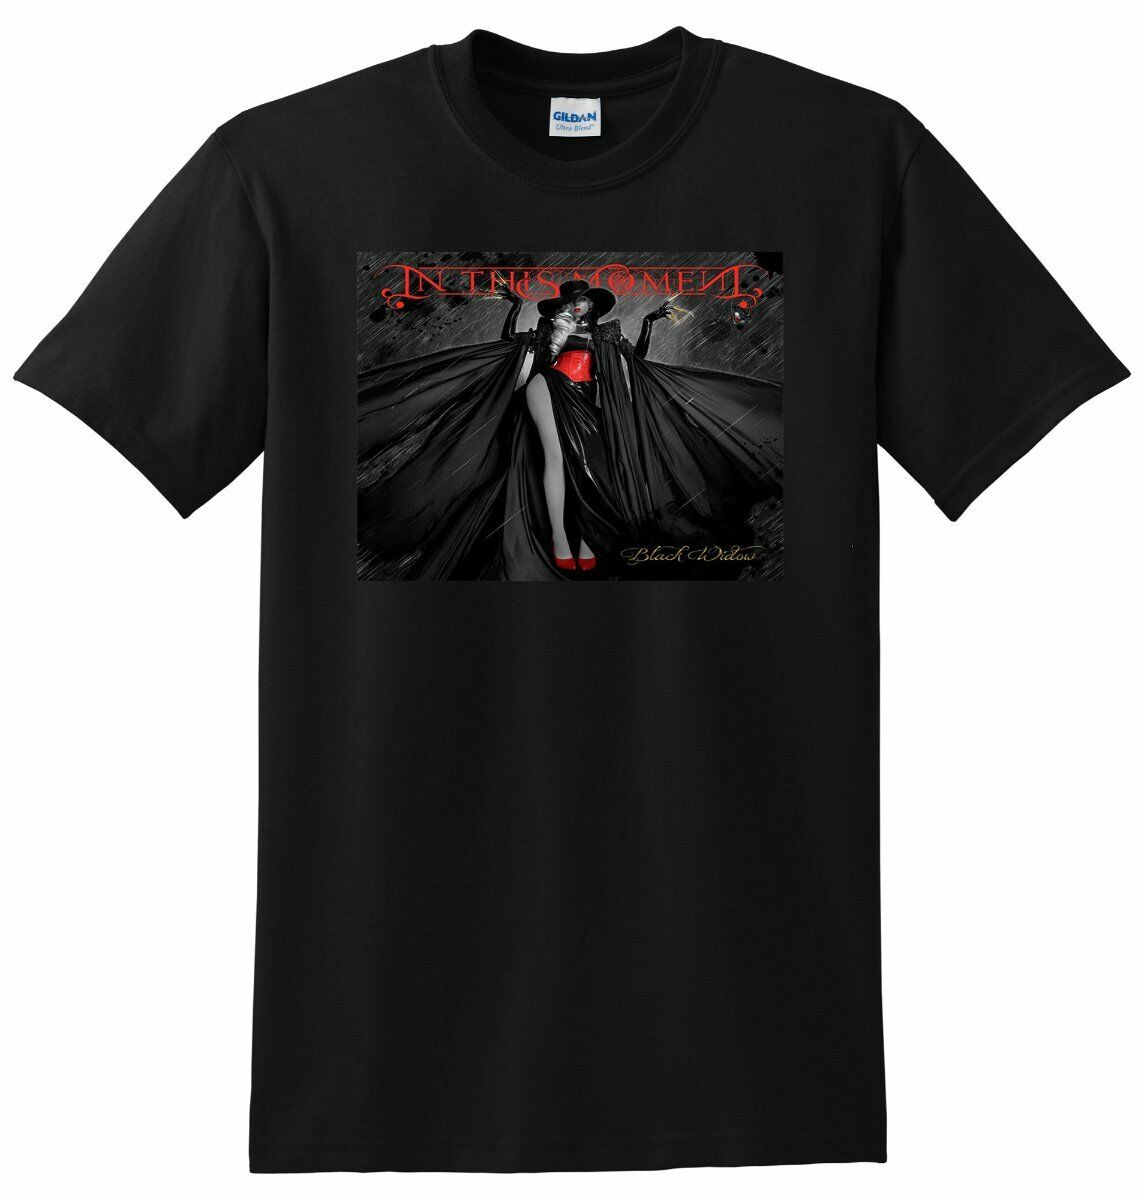 BLACK WIDOW T SHIRT In This Moment Vinyl Cd Poster Tee New 2019 Fashion Mens T-Shirts